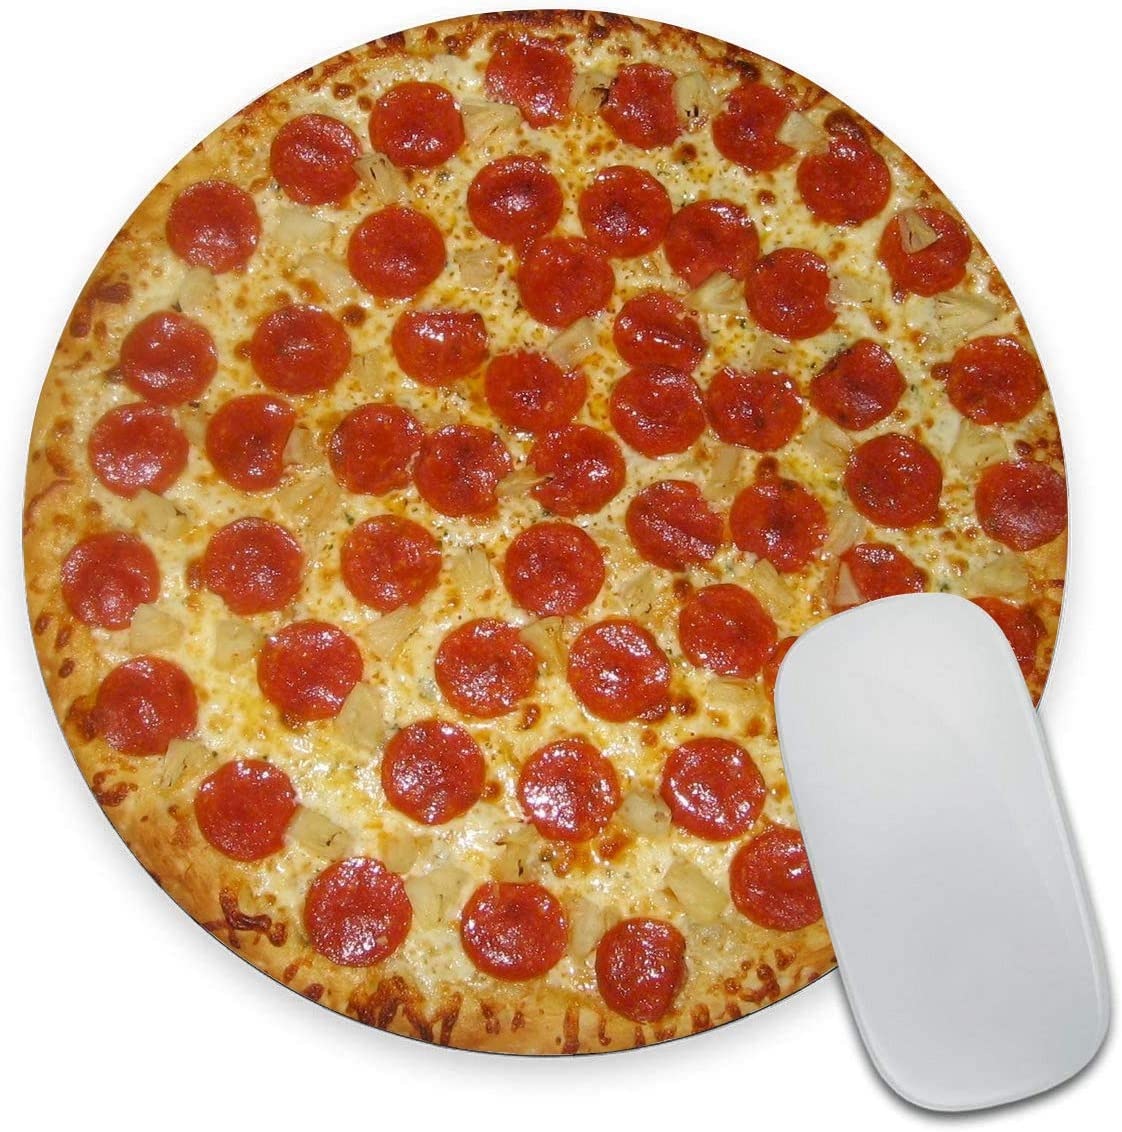 Round Mouse Pad, Pizza Mouse Pad, Cool Mouse pad, Novelty Food Mouse Mat, Non-Slip Rubber Base Portable Mousepad, Circular Waterproof Mouse Pad, Small Size for Office Home Travel 7.9 x 0.12 Inch